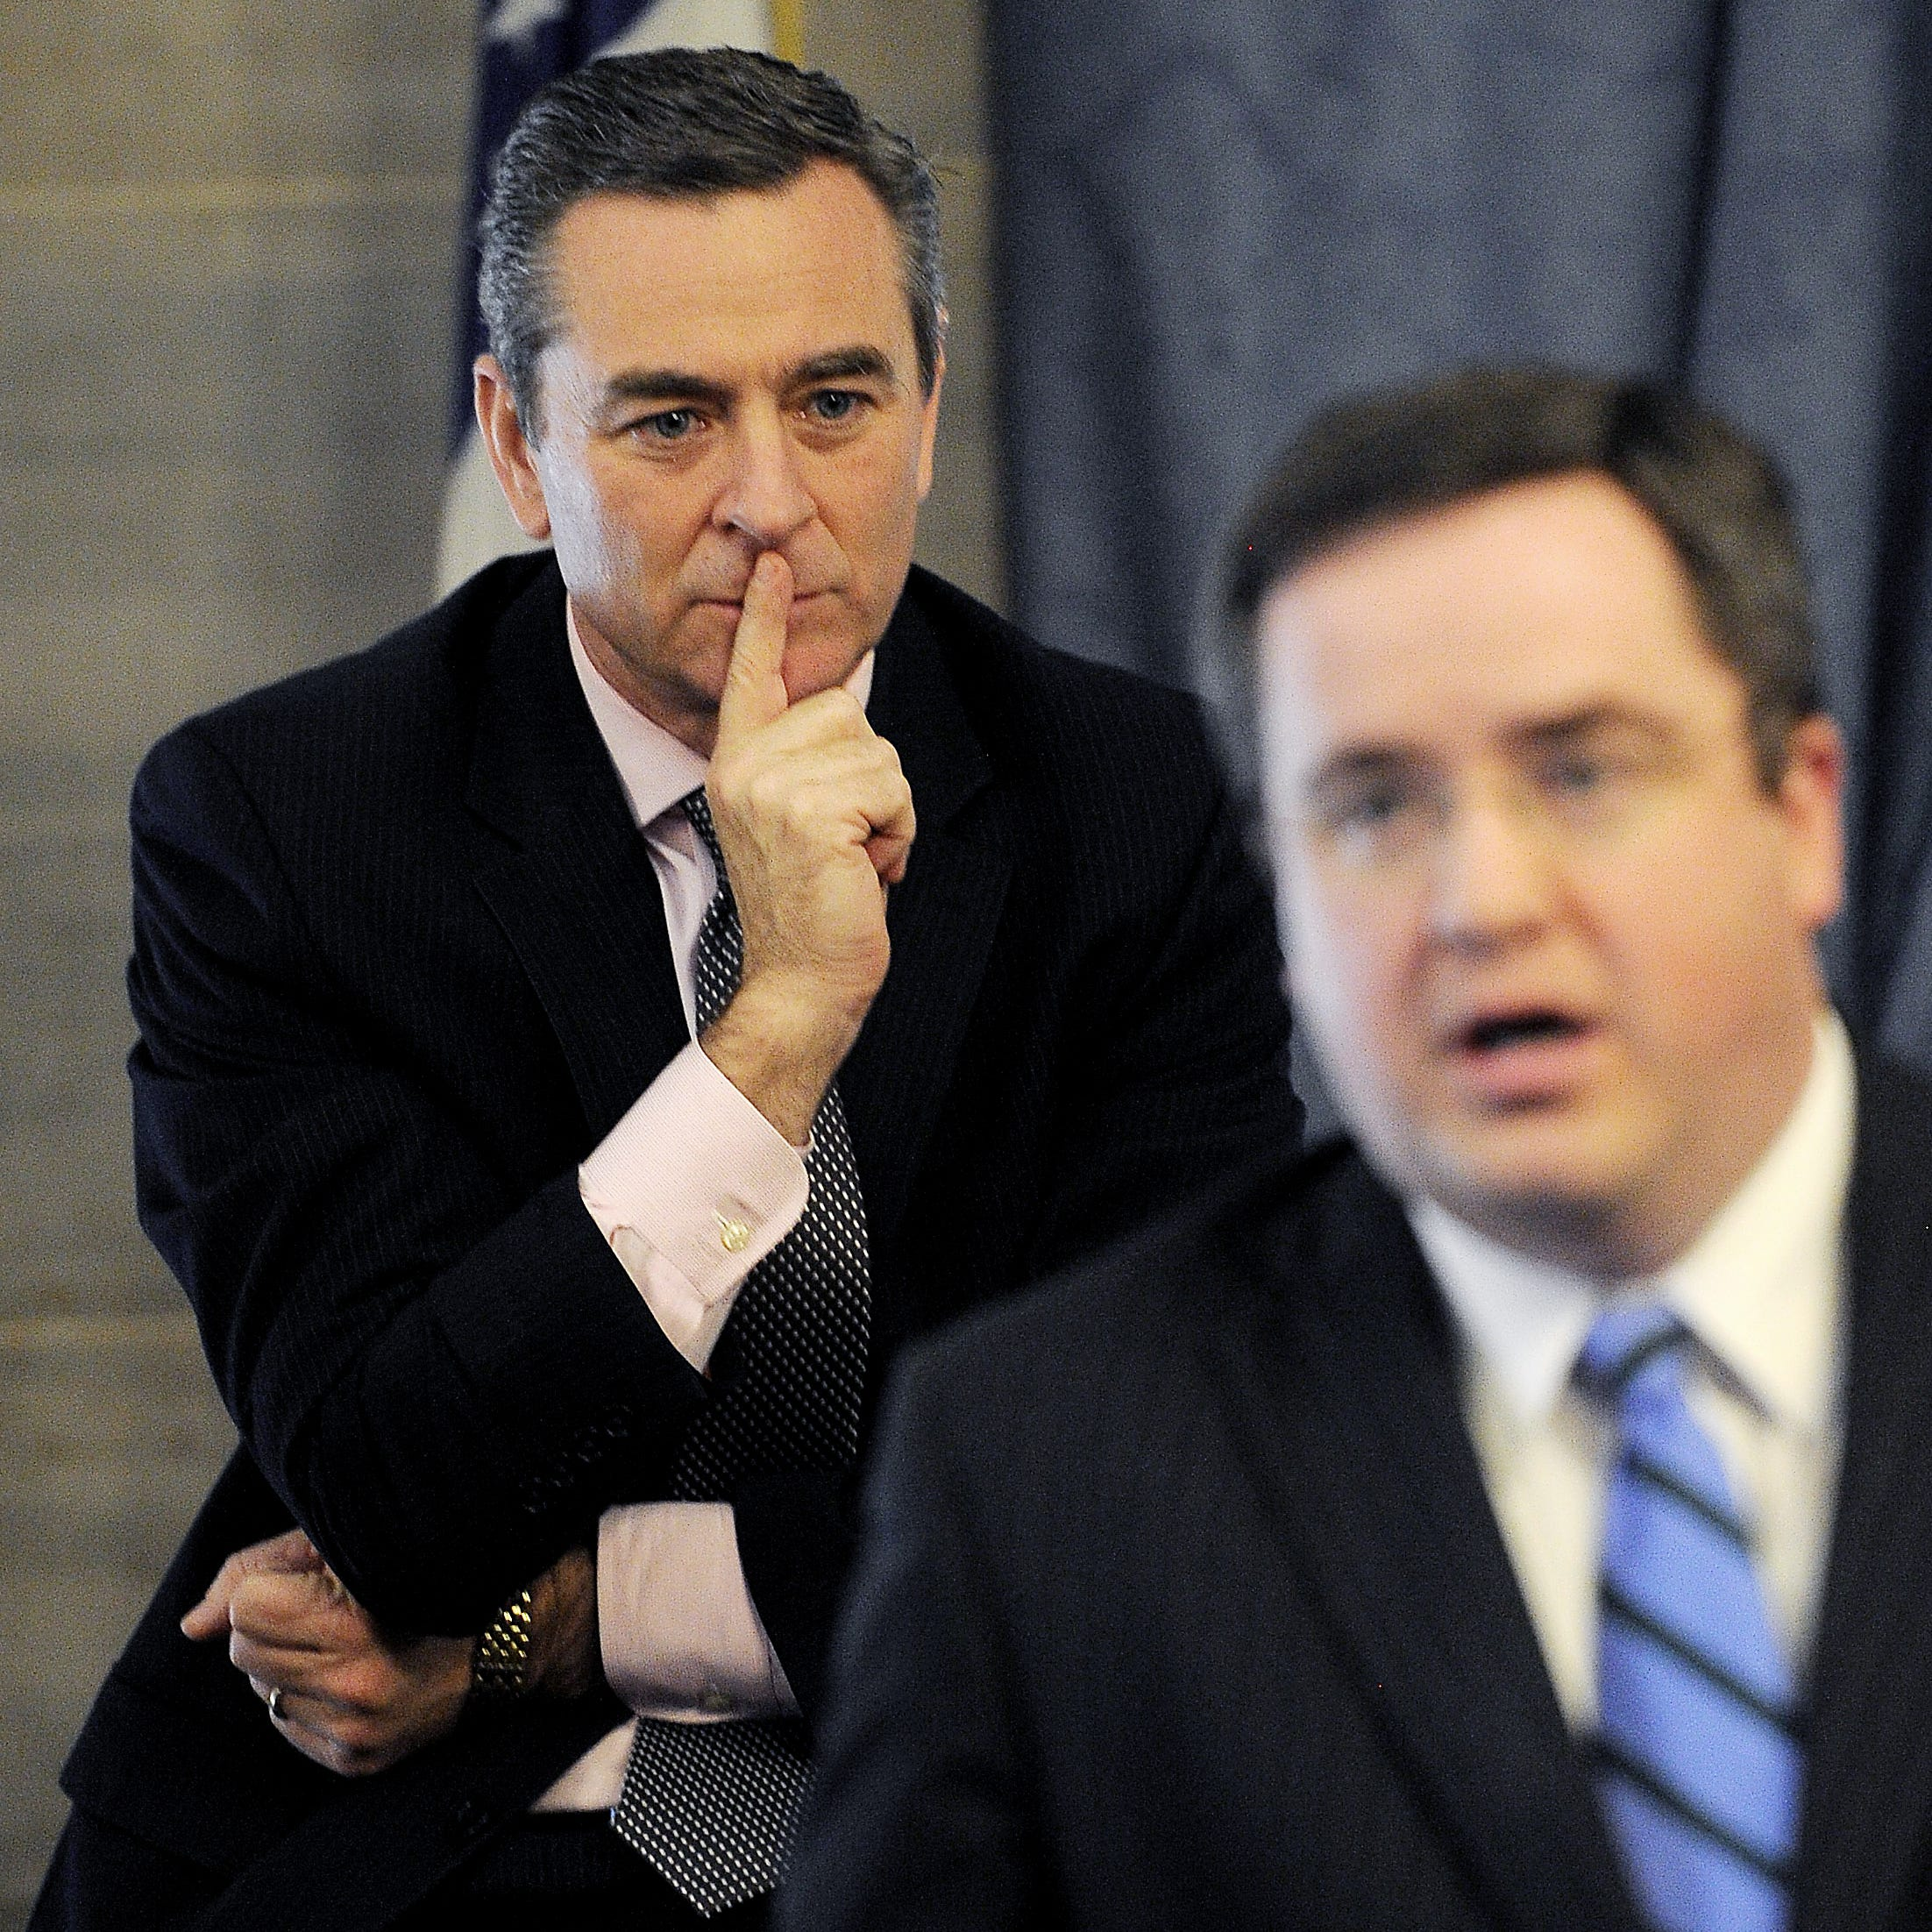 Some Republicans call for Speaker Casada to resign, amid sext scandal involving his office